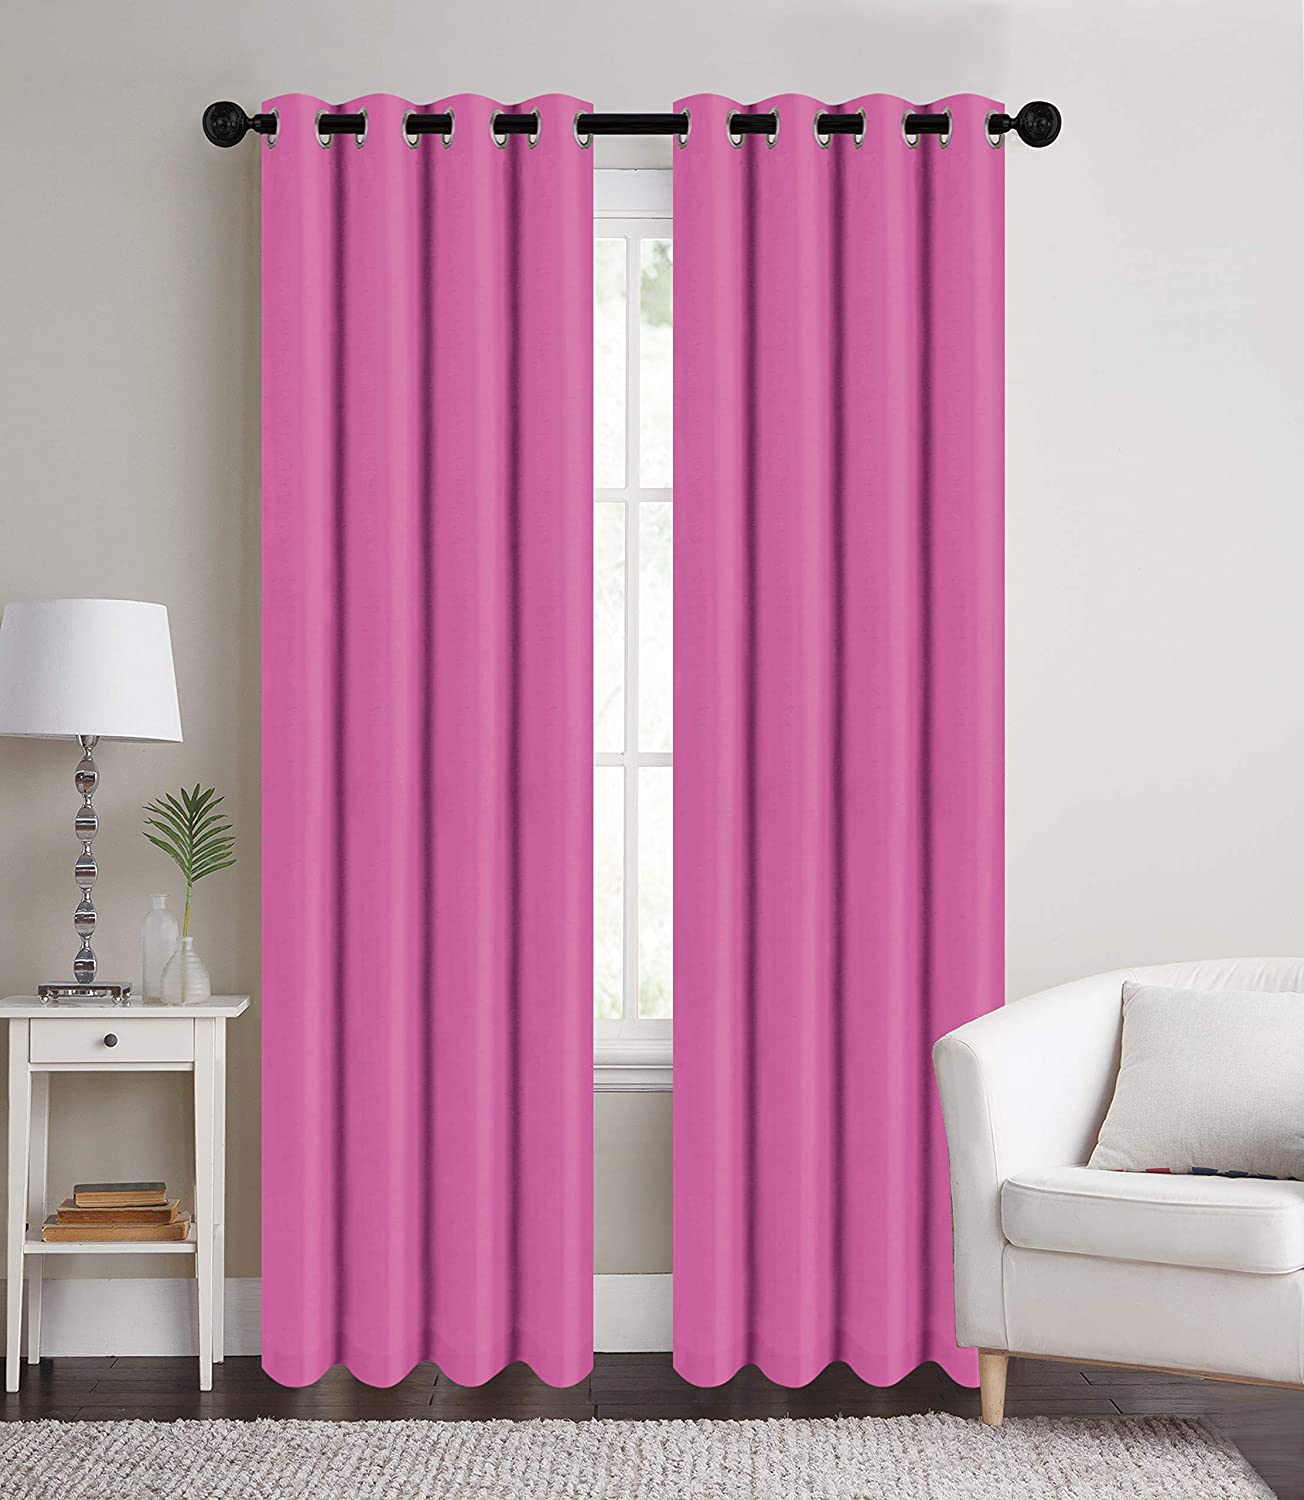 Royal Blue Sapphire Home 2 Grommet Woven Blackout Curtain Panels Solid Color 54 W x 84 L Soft Thermal Insulated Room Insulating Darkening Solid Curtains Drapes for Bedroom//Living Room Patio Door